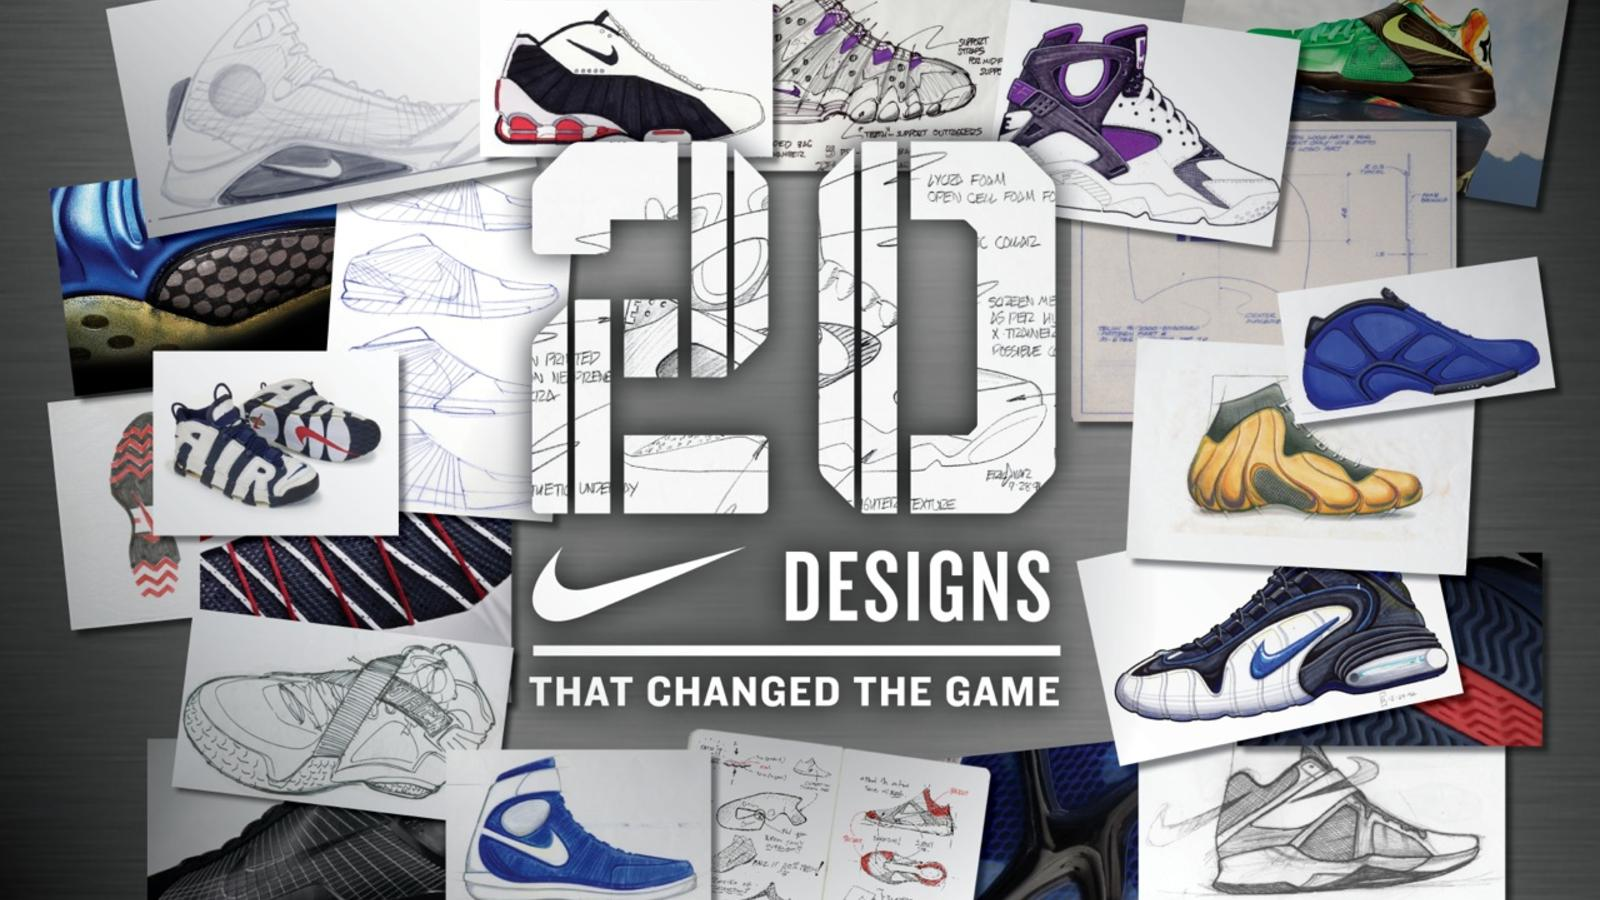 7b9a064ee548 Nike Presents  20 Designs that Changed the Game - Nike News